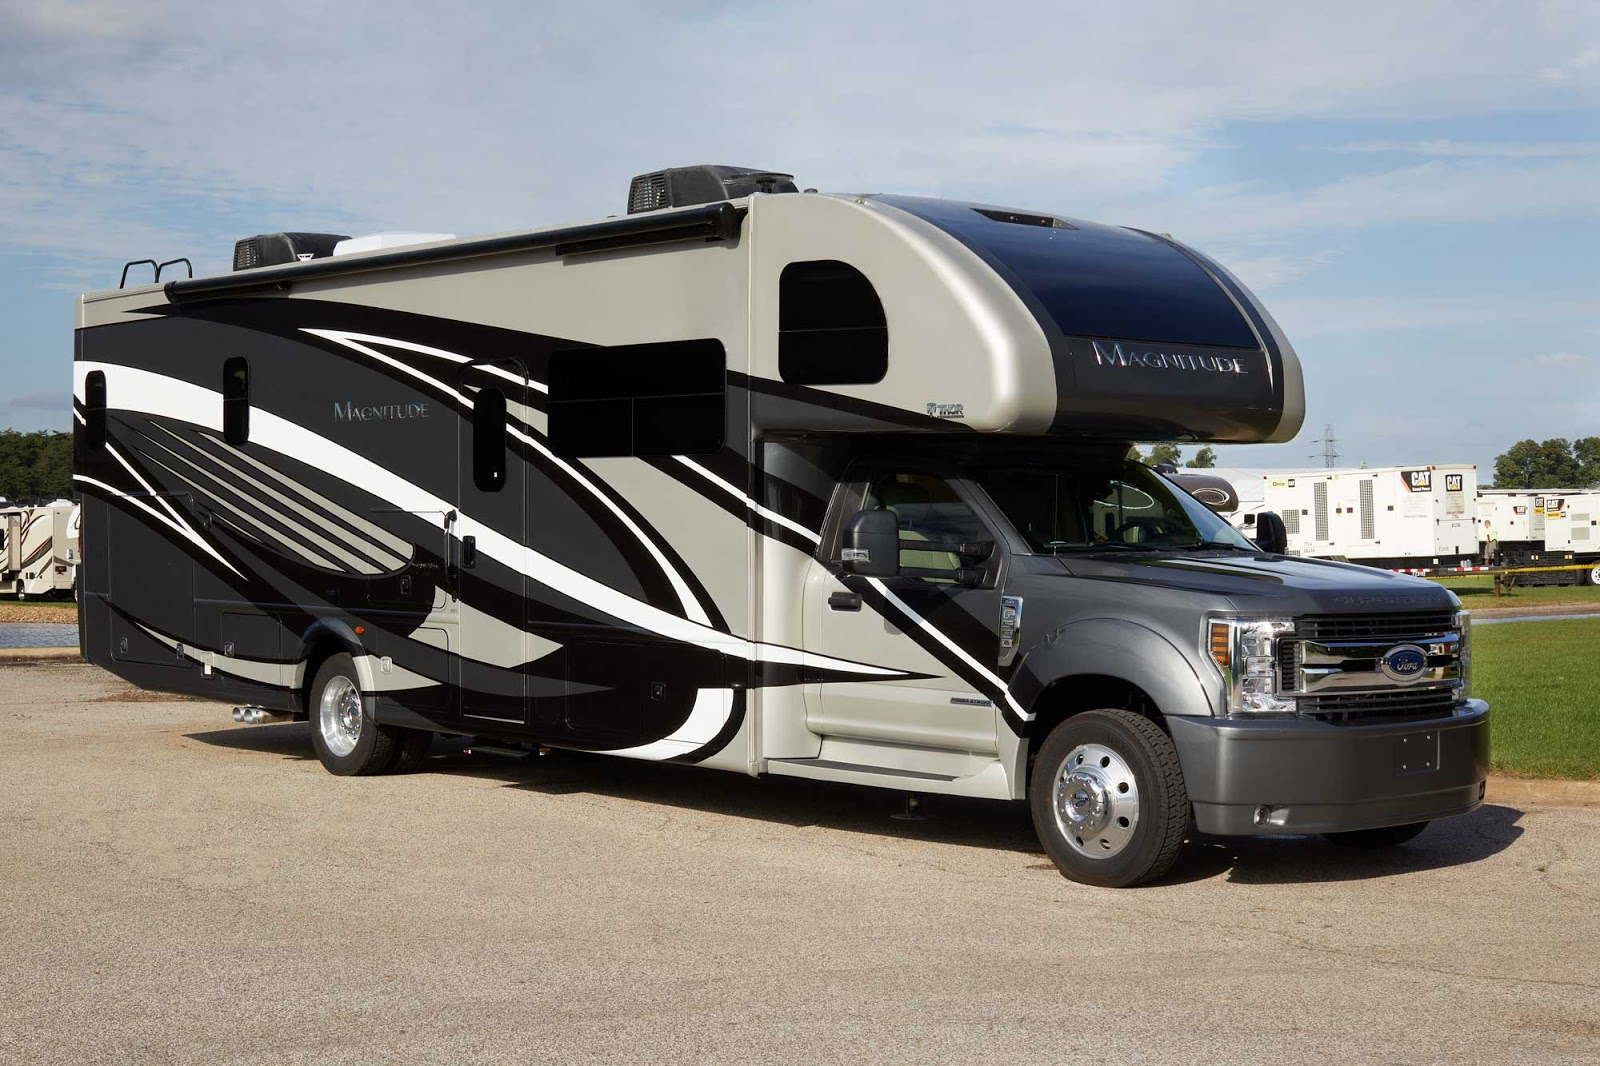 New for '19: Thor Motor Coach Unveils Exciting New Super C